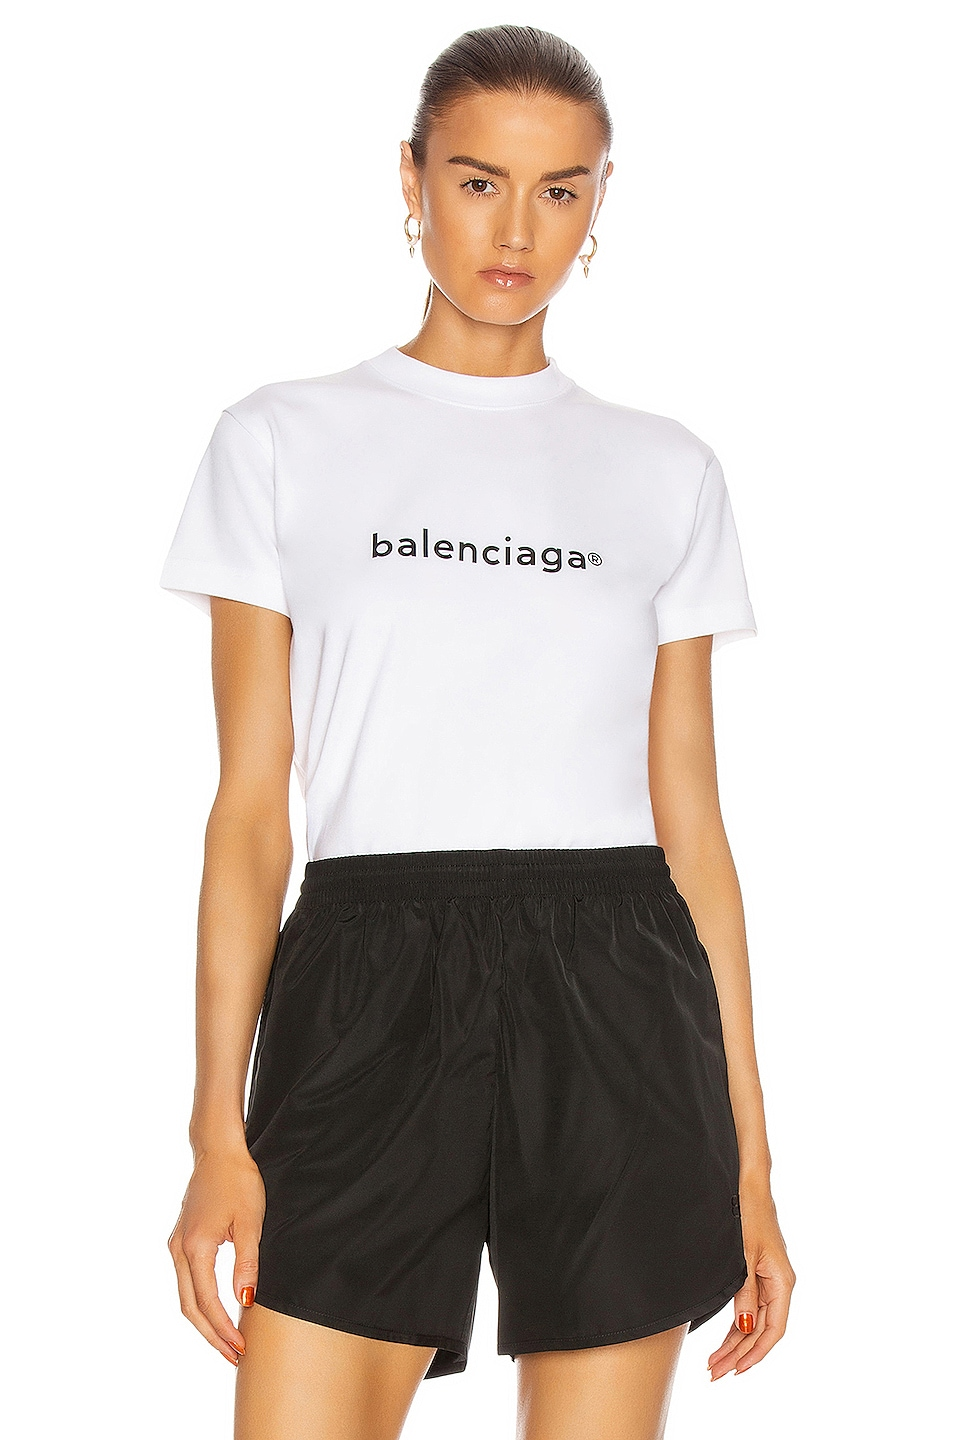 Image 1 of Balenciaga Small Fit T Shirt in White & Black